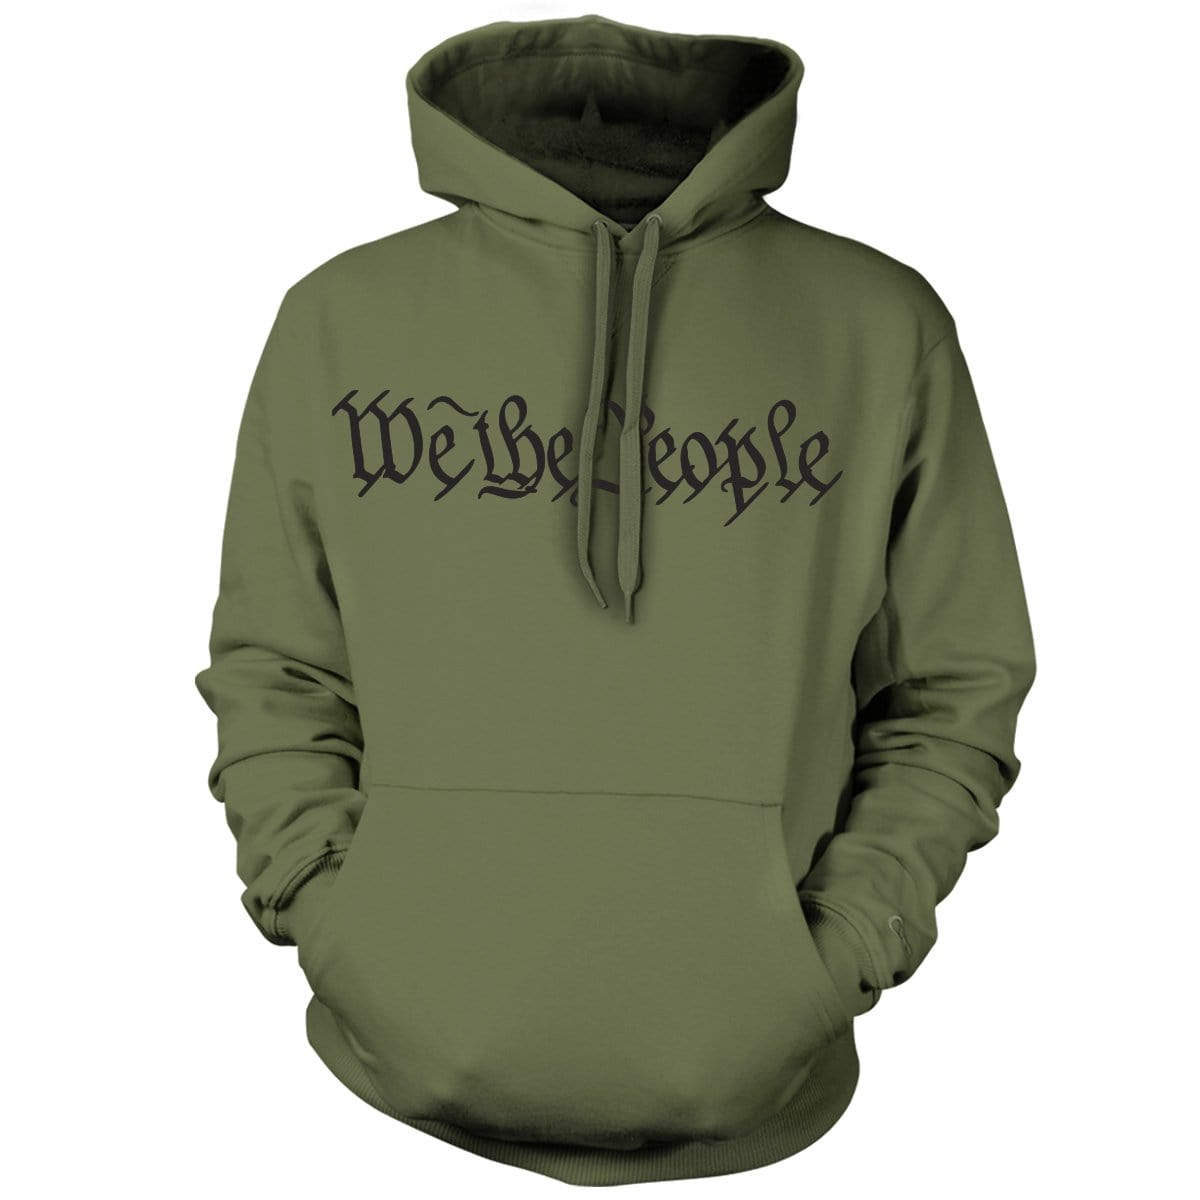 We The People Hoodie - Military Green - Hoodies - Pipe Hitters Union